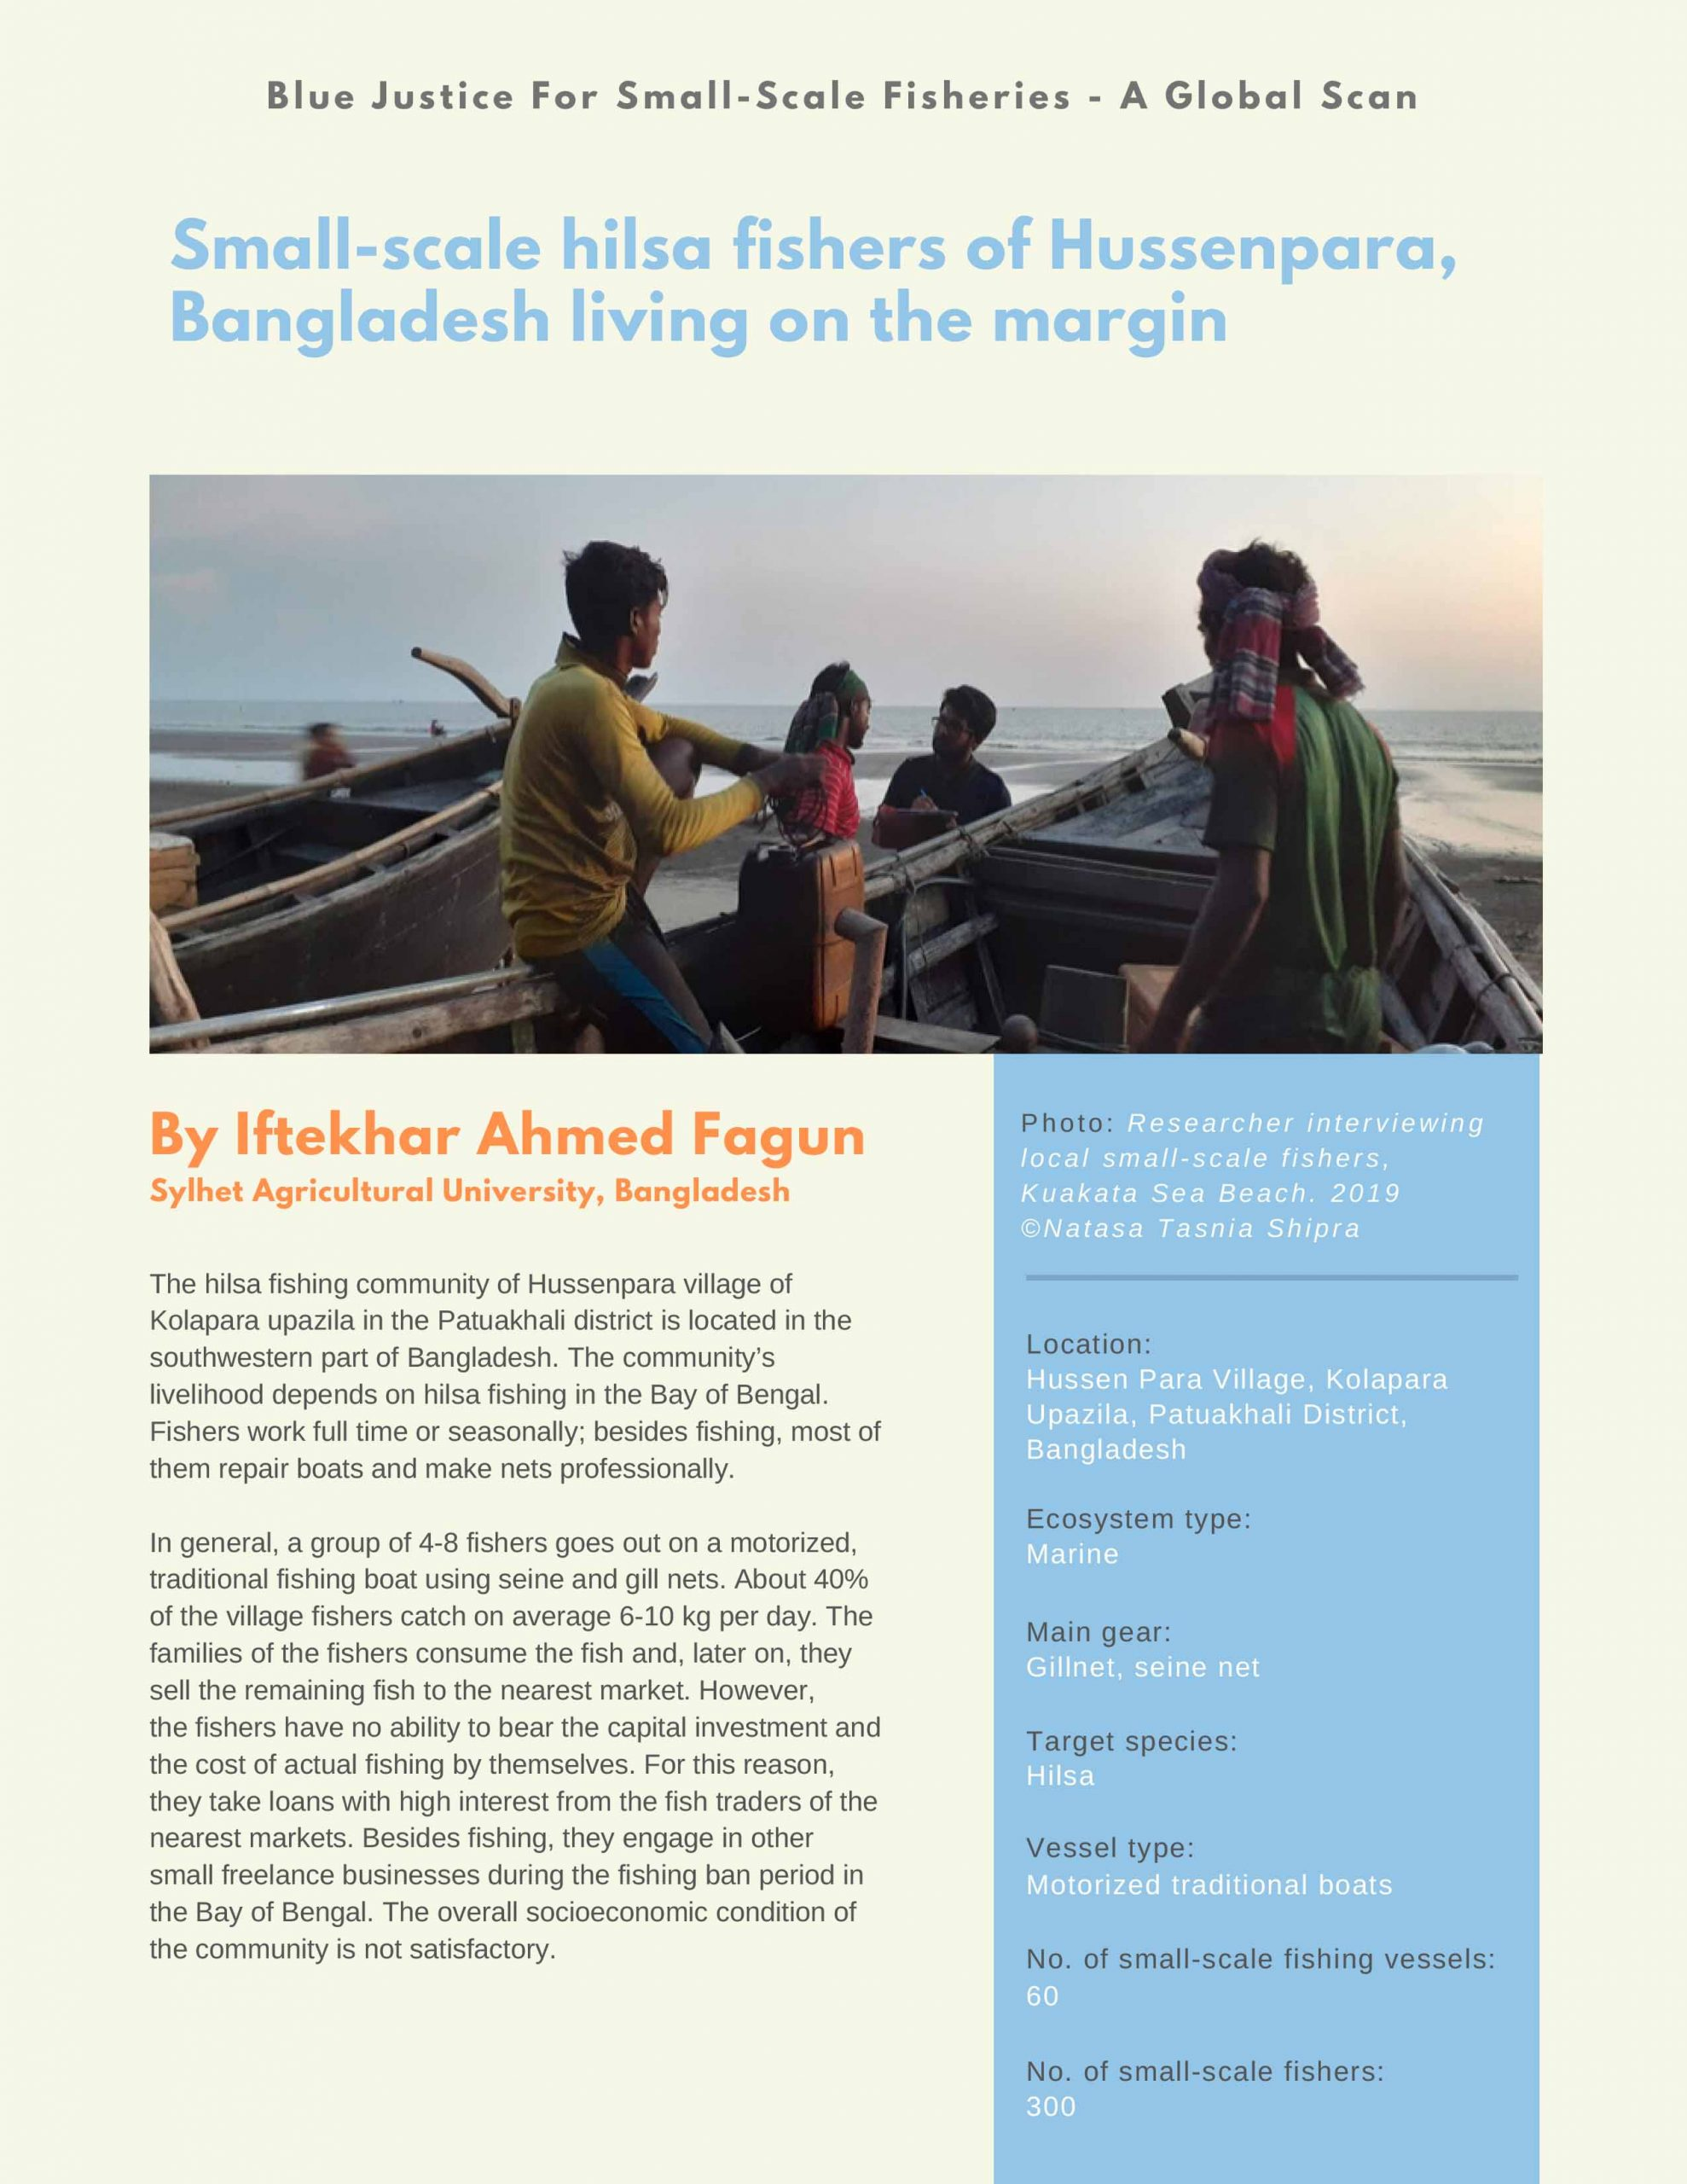 Small-scale hilsa fishers of Hussenpara, Bangladesh living on the margin